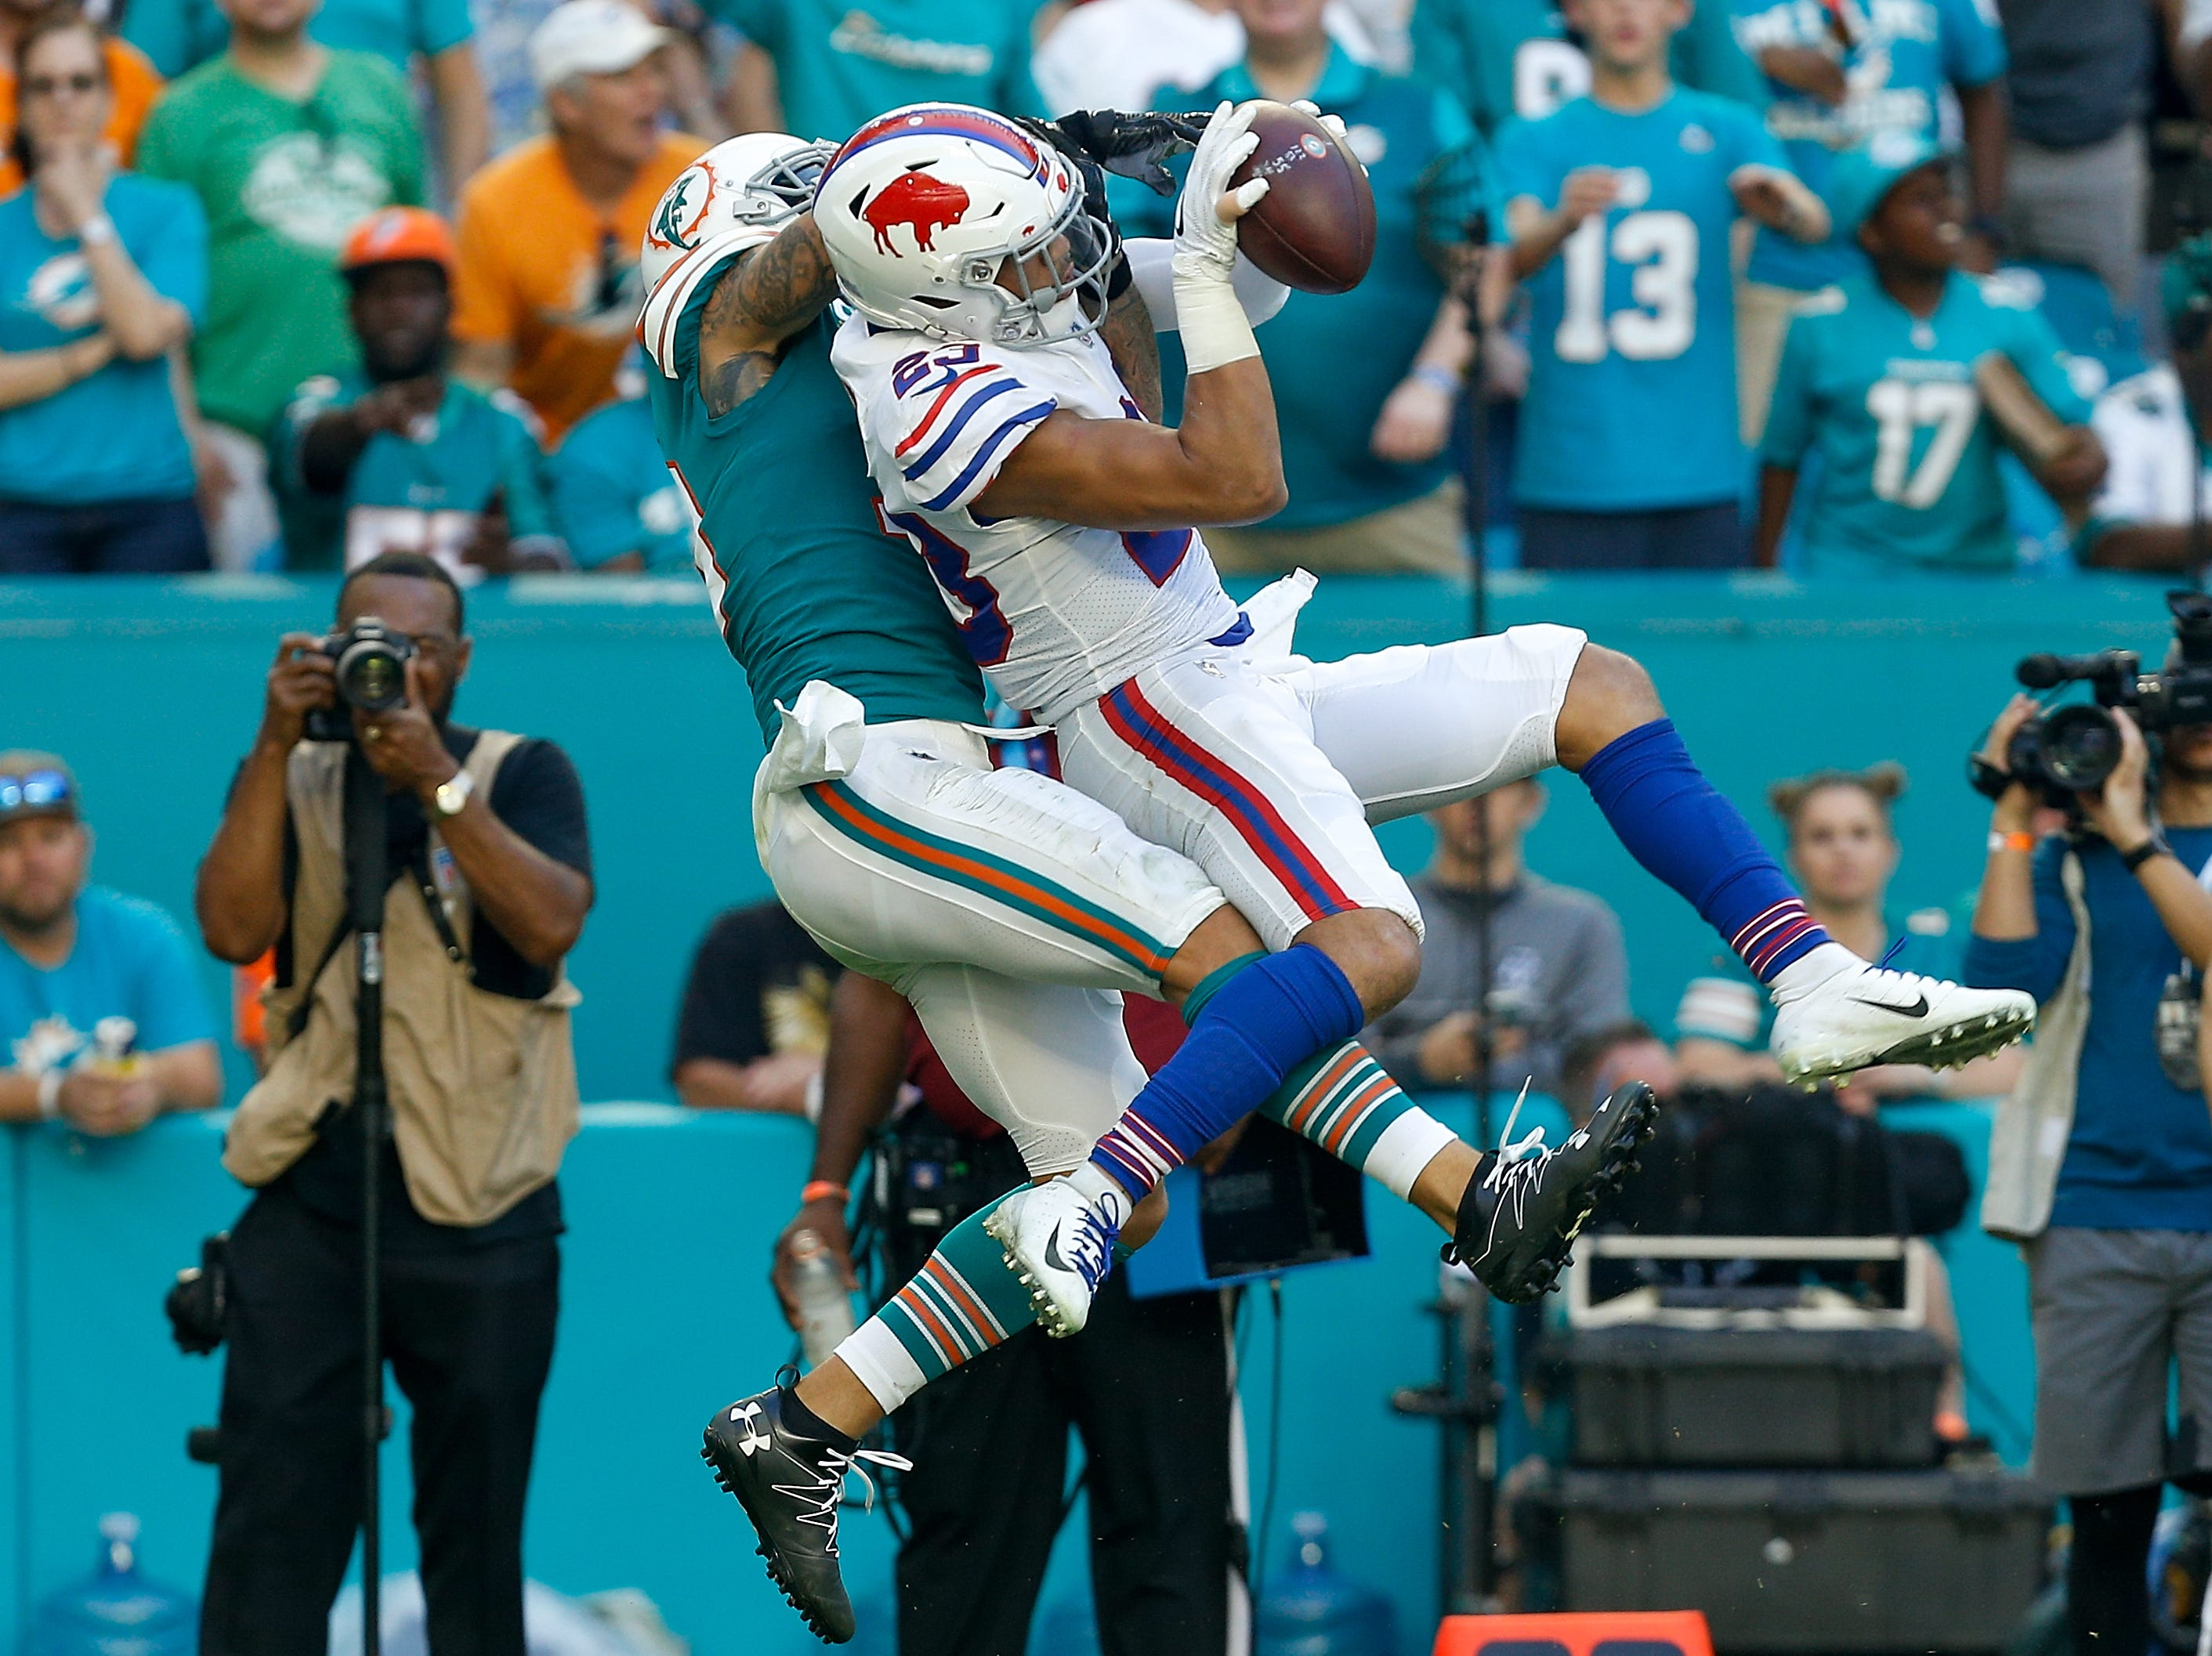 MIAMI, FL - DECEMBER 02: Micah Hyde #23 of the Buffalo Bills makes the catch for an interception (thrown by Ryan Tannehill #17 of the Miami Dolphins) during the second half against the Miami Dolphins at Hard Rock Stadium on December 2, 2018 in Miami, Florida.  (Photo by Michael Reaves/Getty Images)